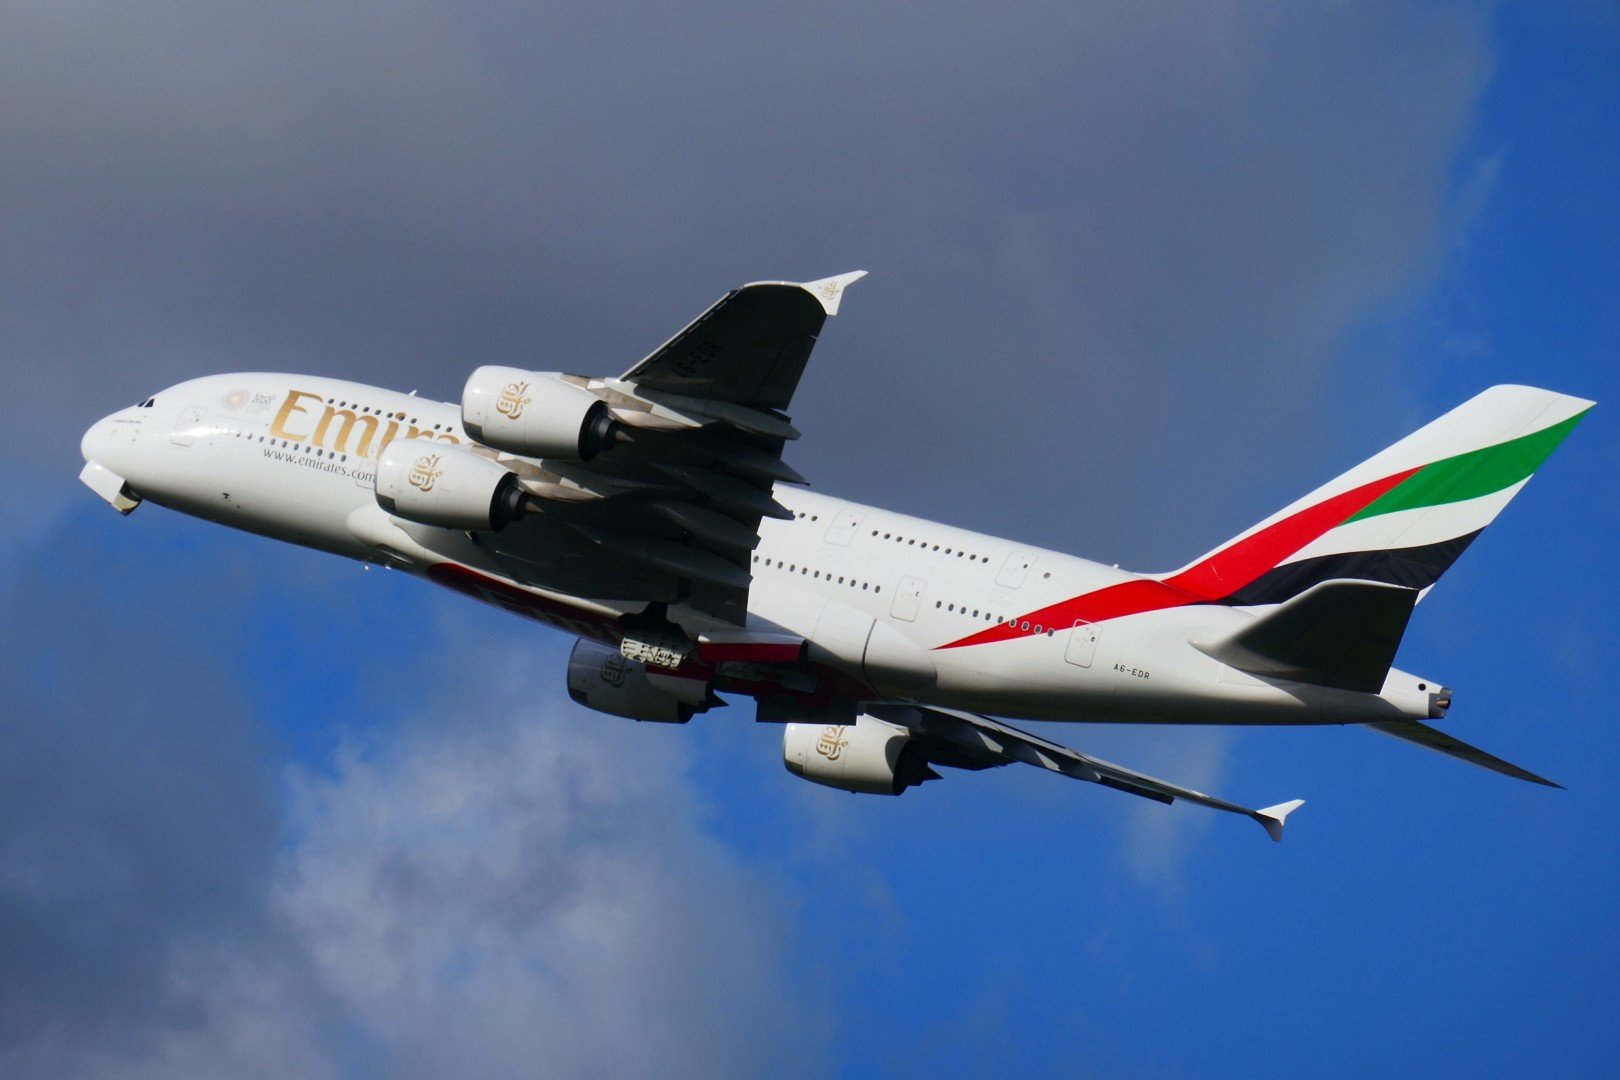 Life is a journey: Flying Away - Airbus A380 taking off at Heathrow terminal 5